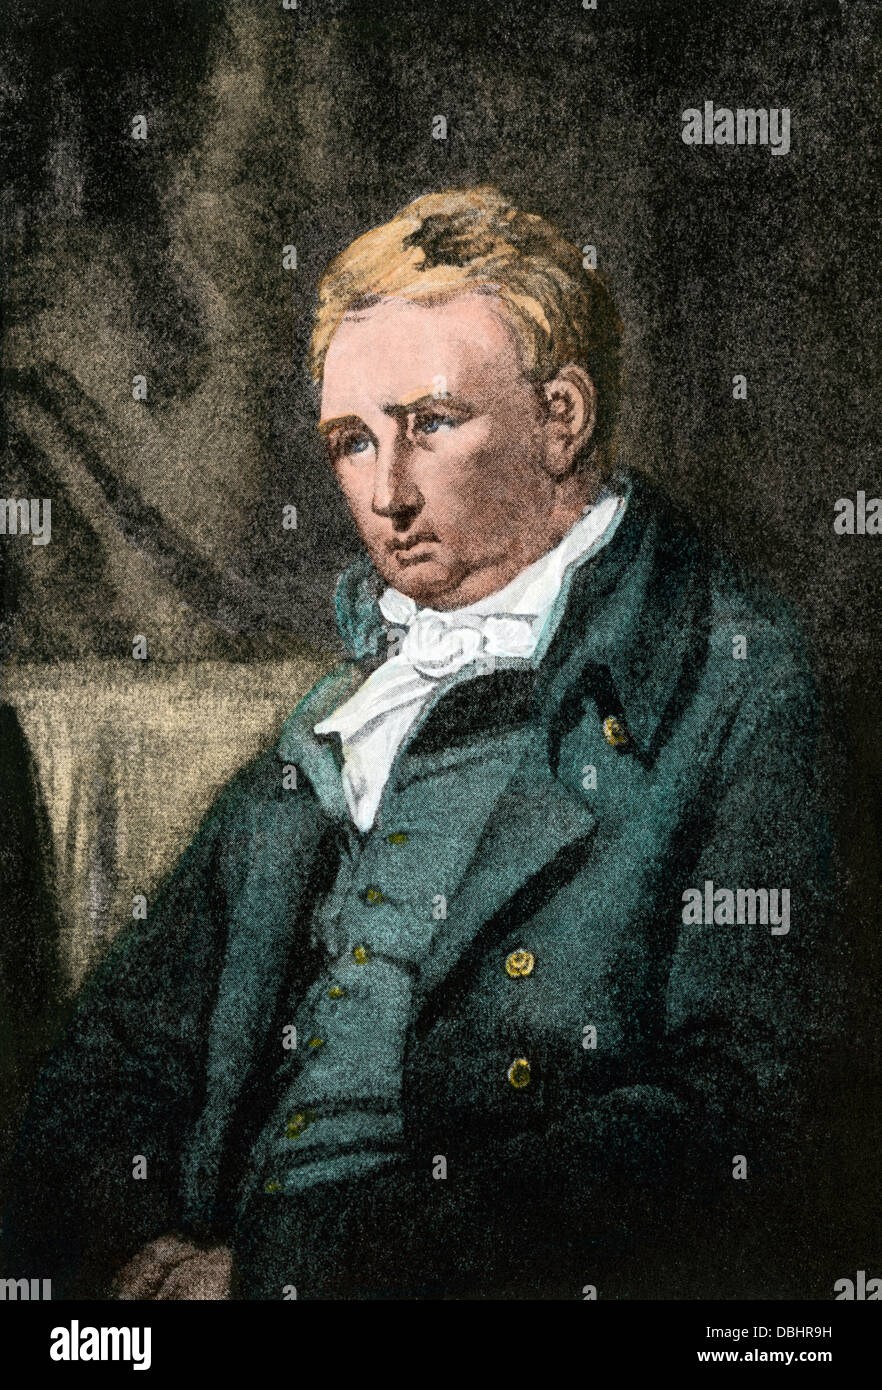 English author William Cobbett, alias Peter Porcupine. Hand-colored halftone reproduction of an illustration - Stock Image